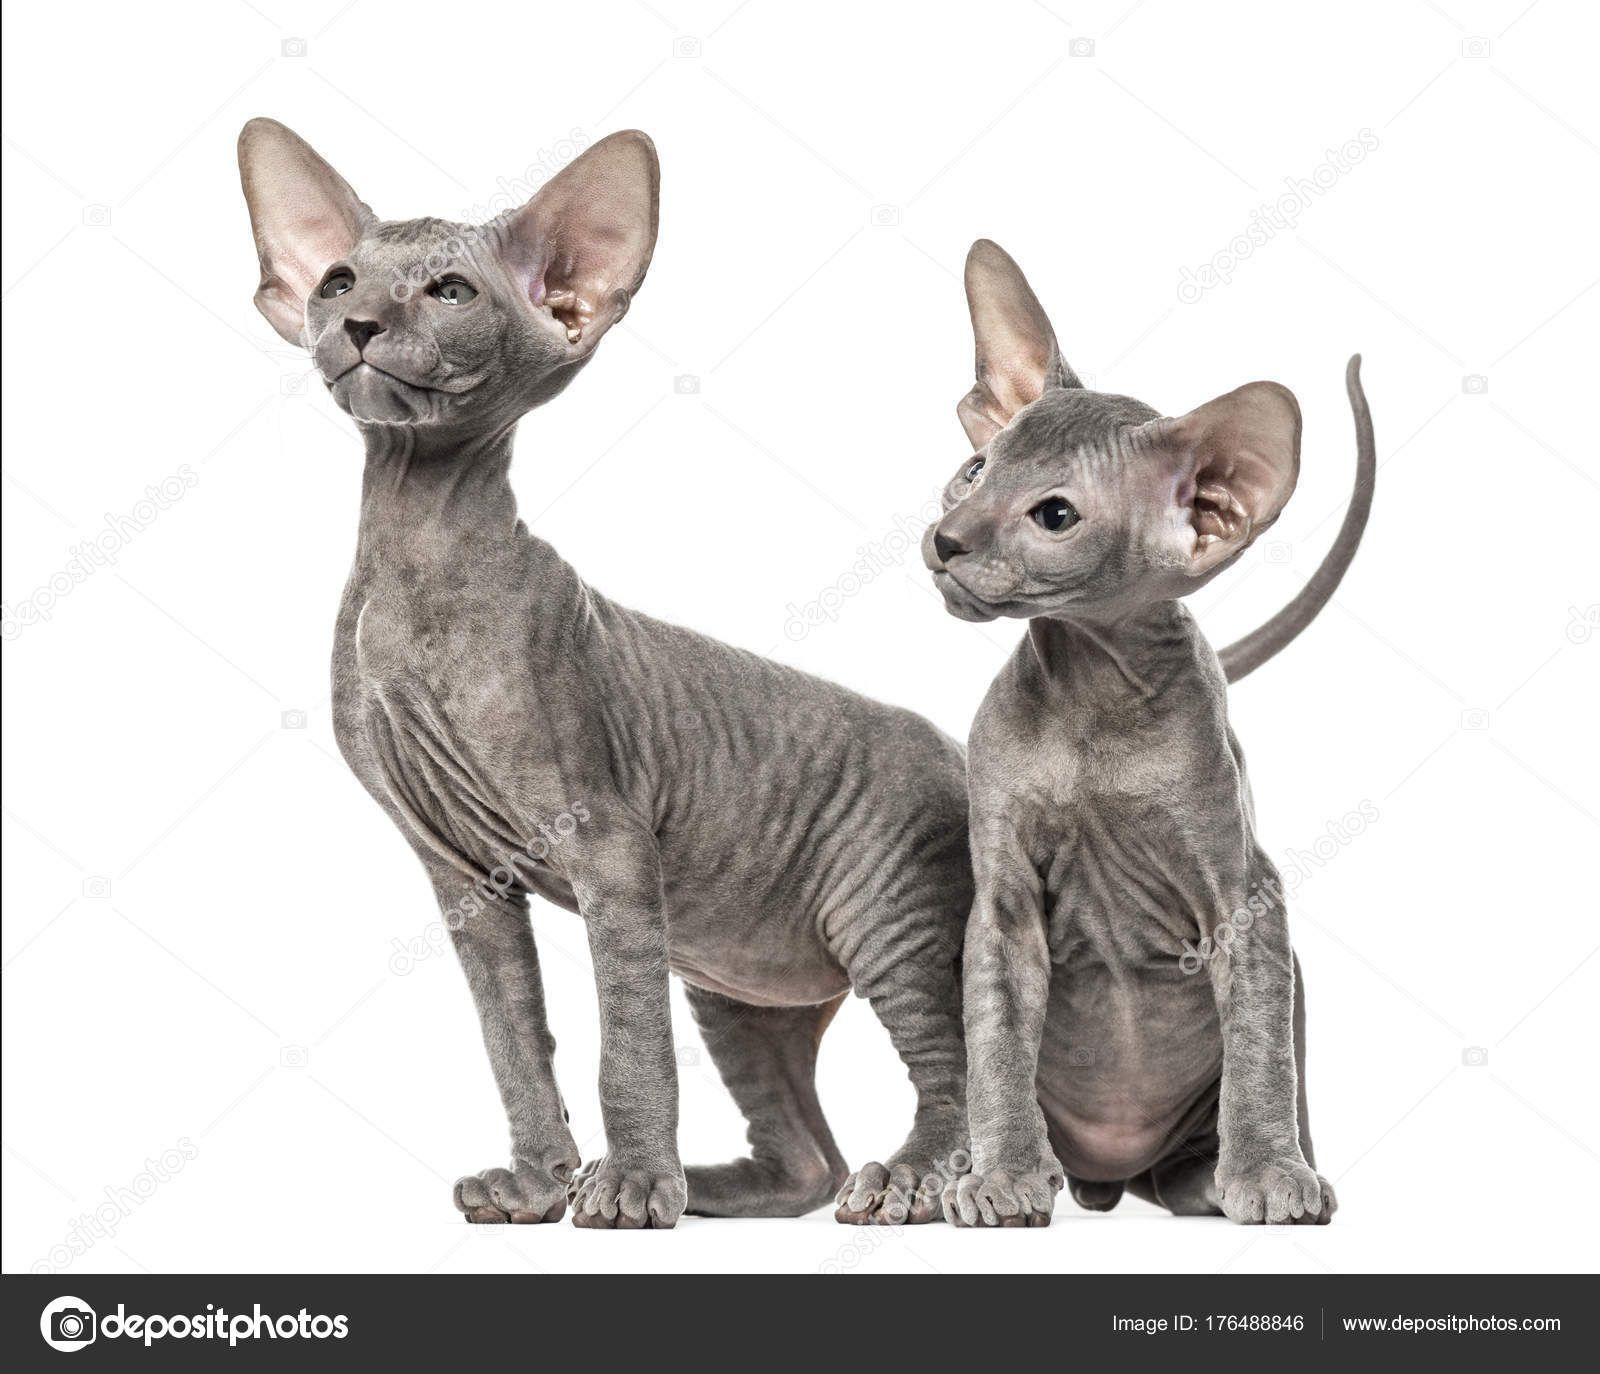 peterbald sphynx kitten - Google Search | Ninepoint OC